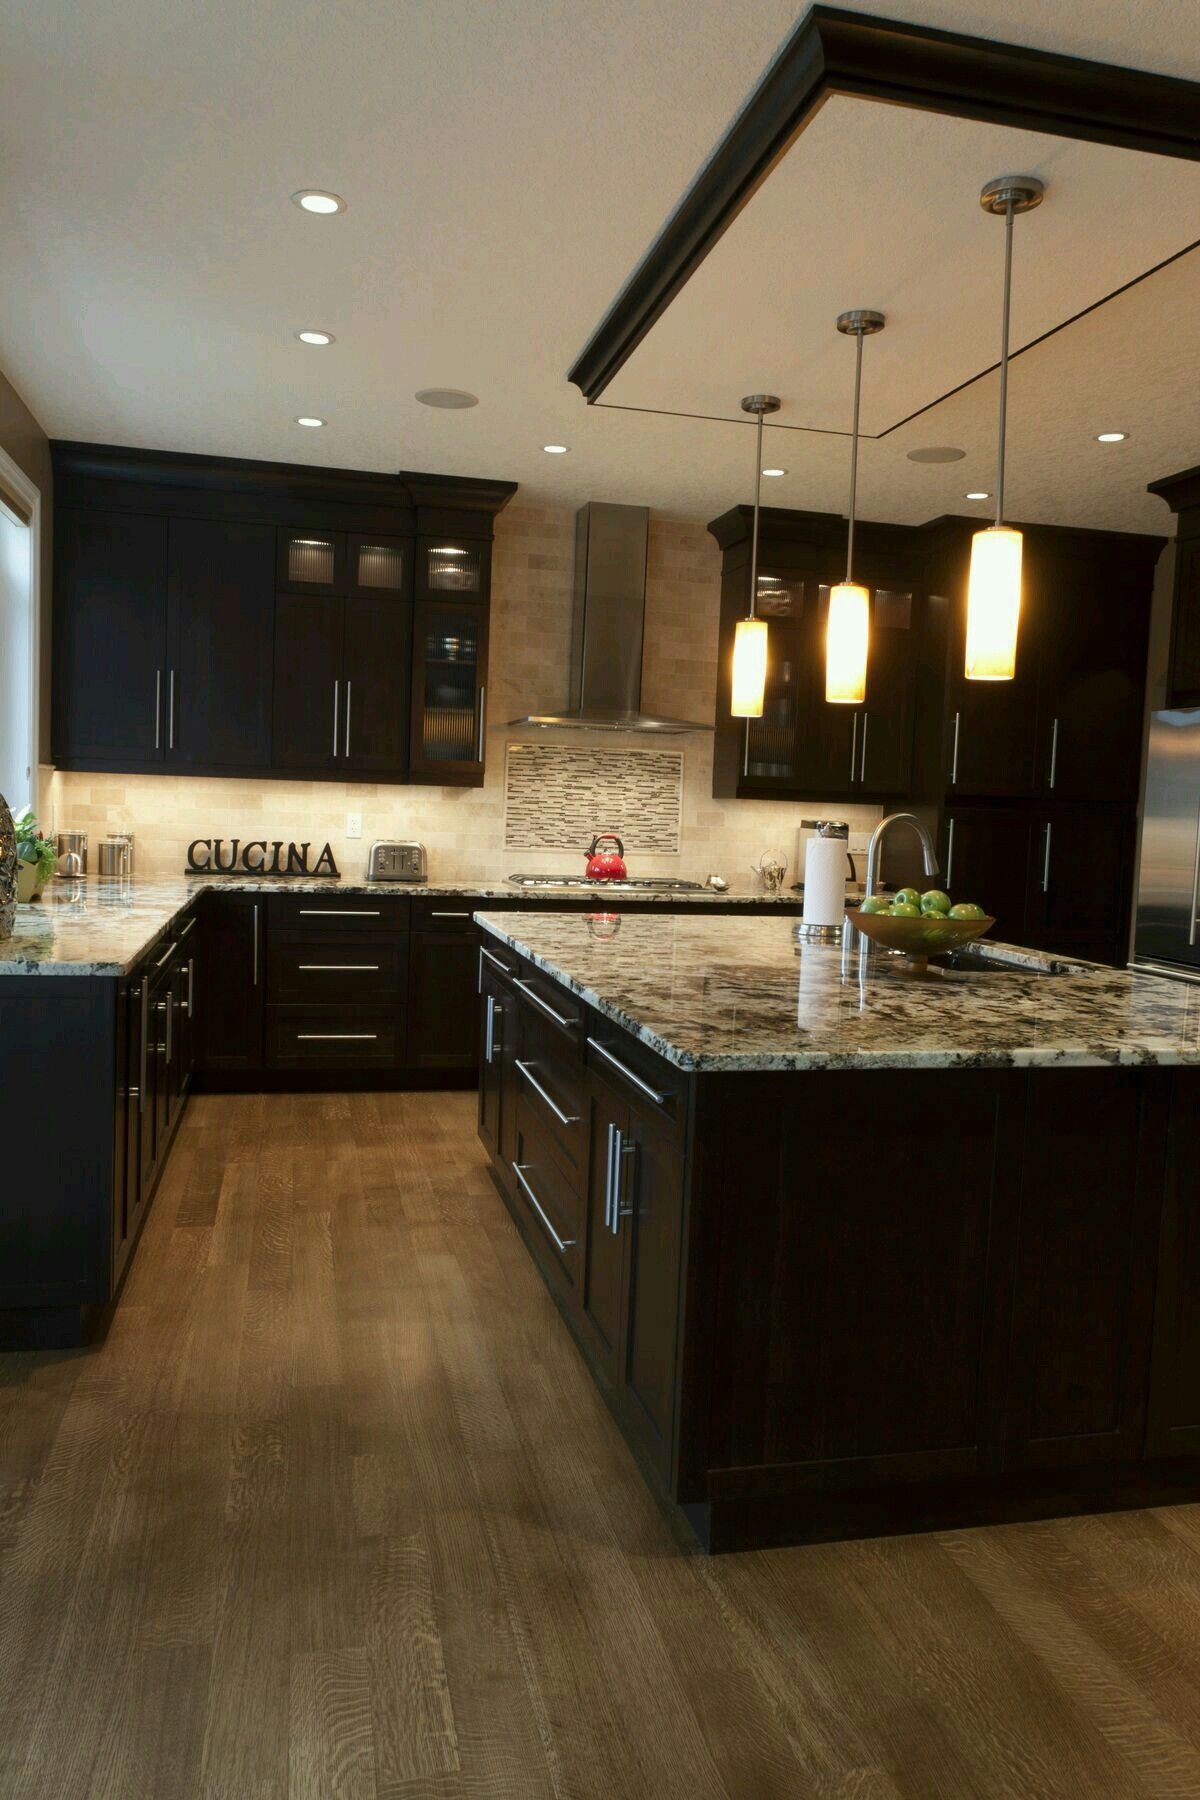 Kitchen Ceiling Ideas Vaulted And 3d Drop Ceiling In 2020 Kitchen Style Kitchen Renovation Home Decor Kitchen